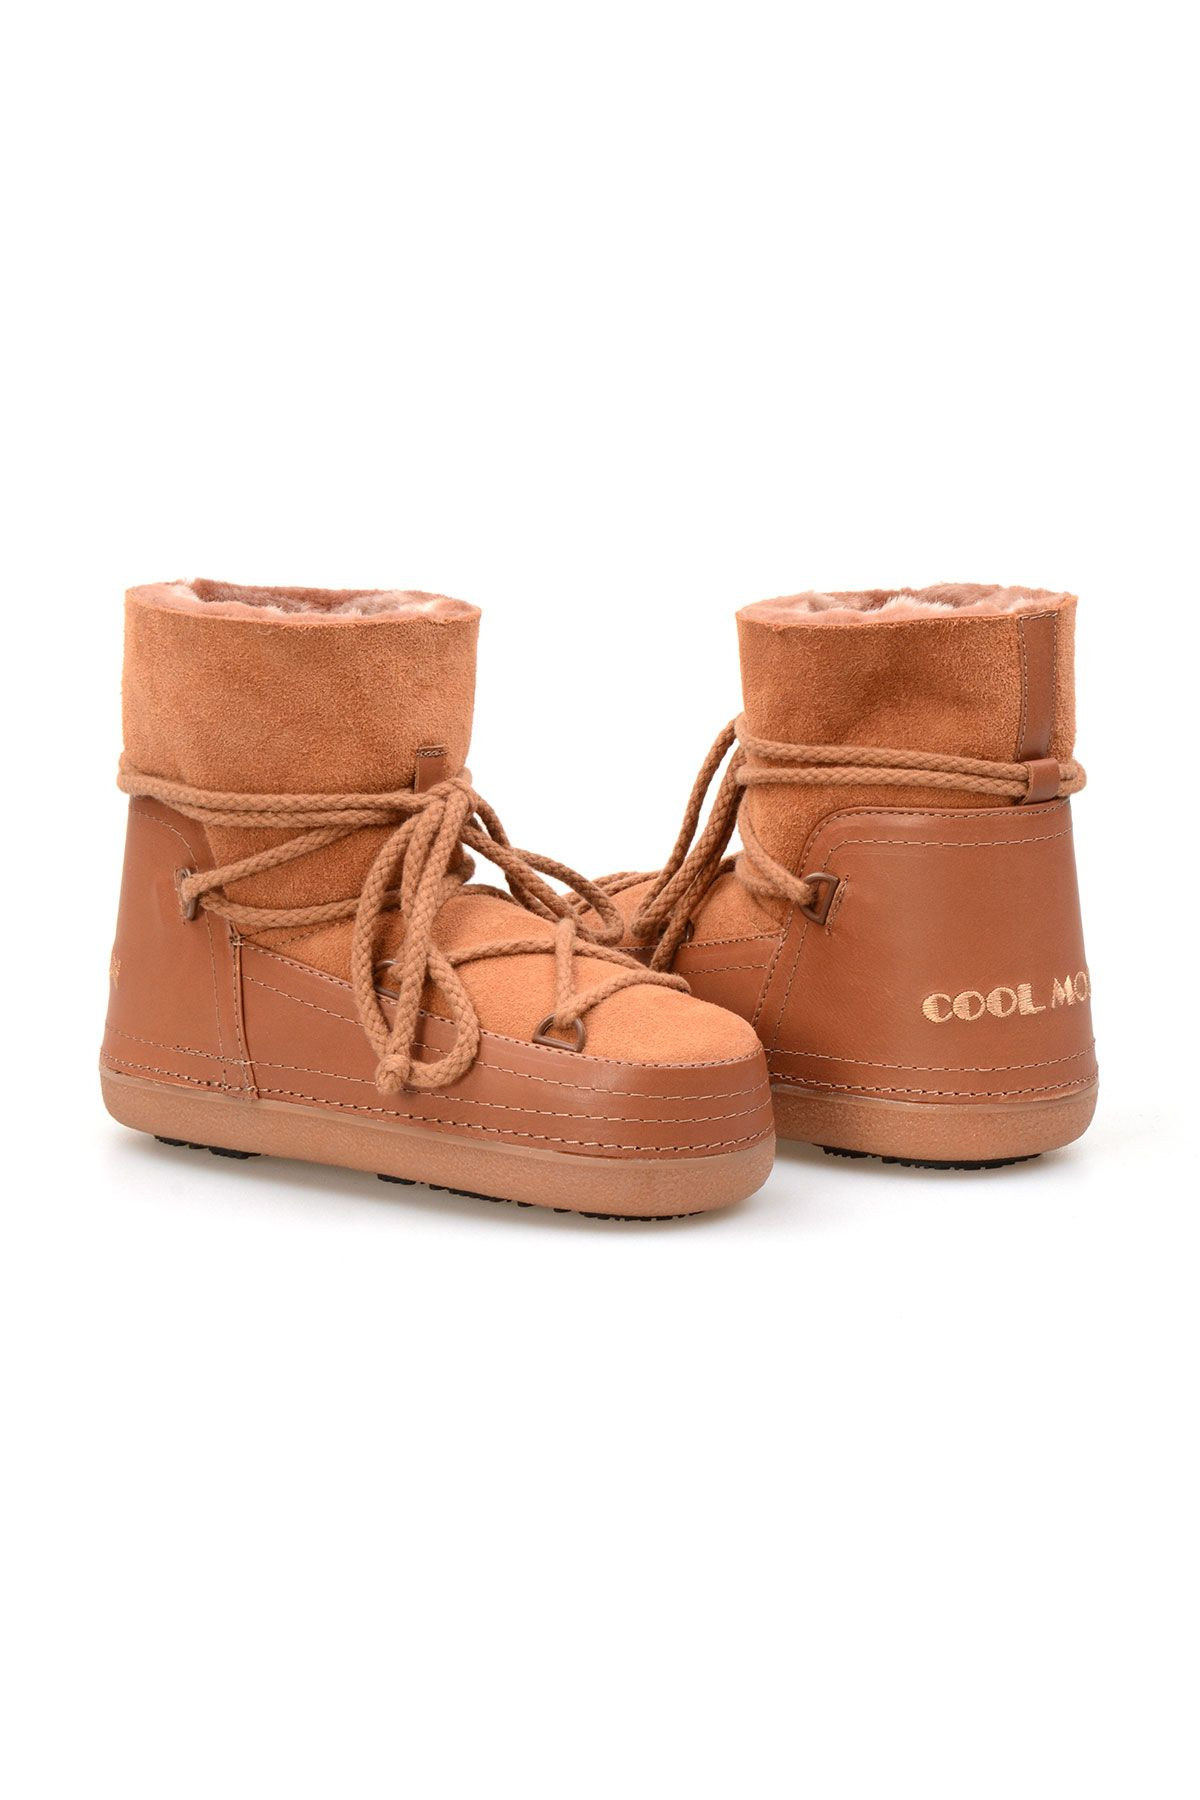 Cool Moon Genuine Sheepskin Women Snow Boots 251001 Ginger